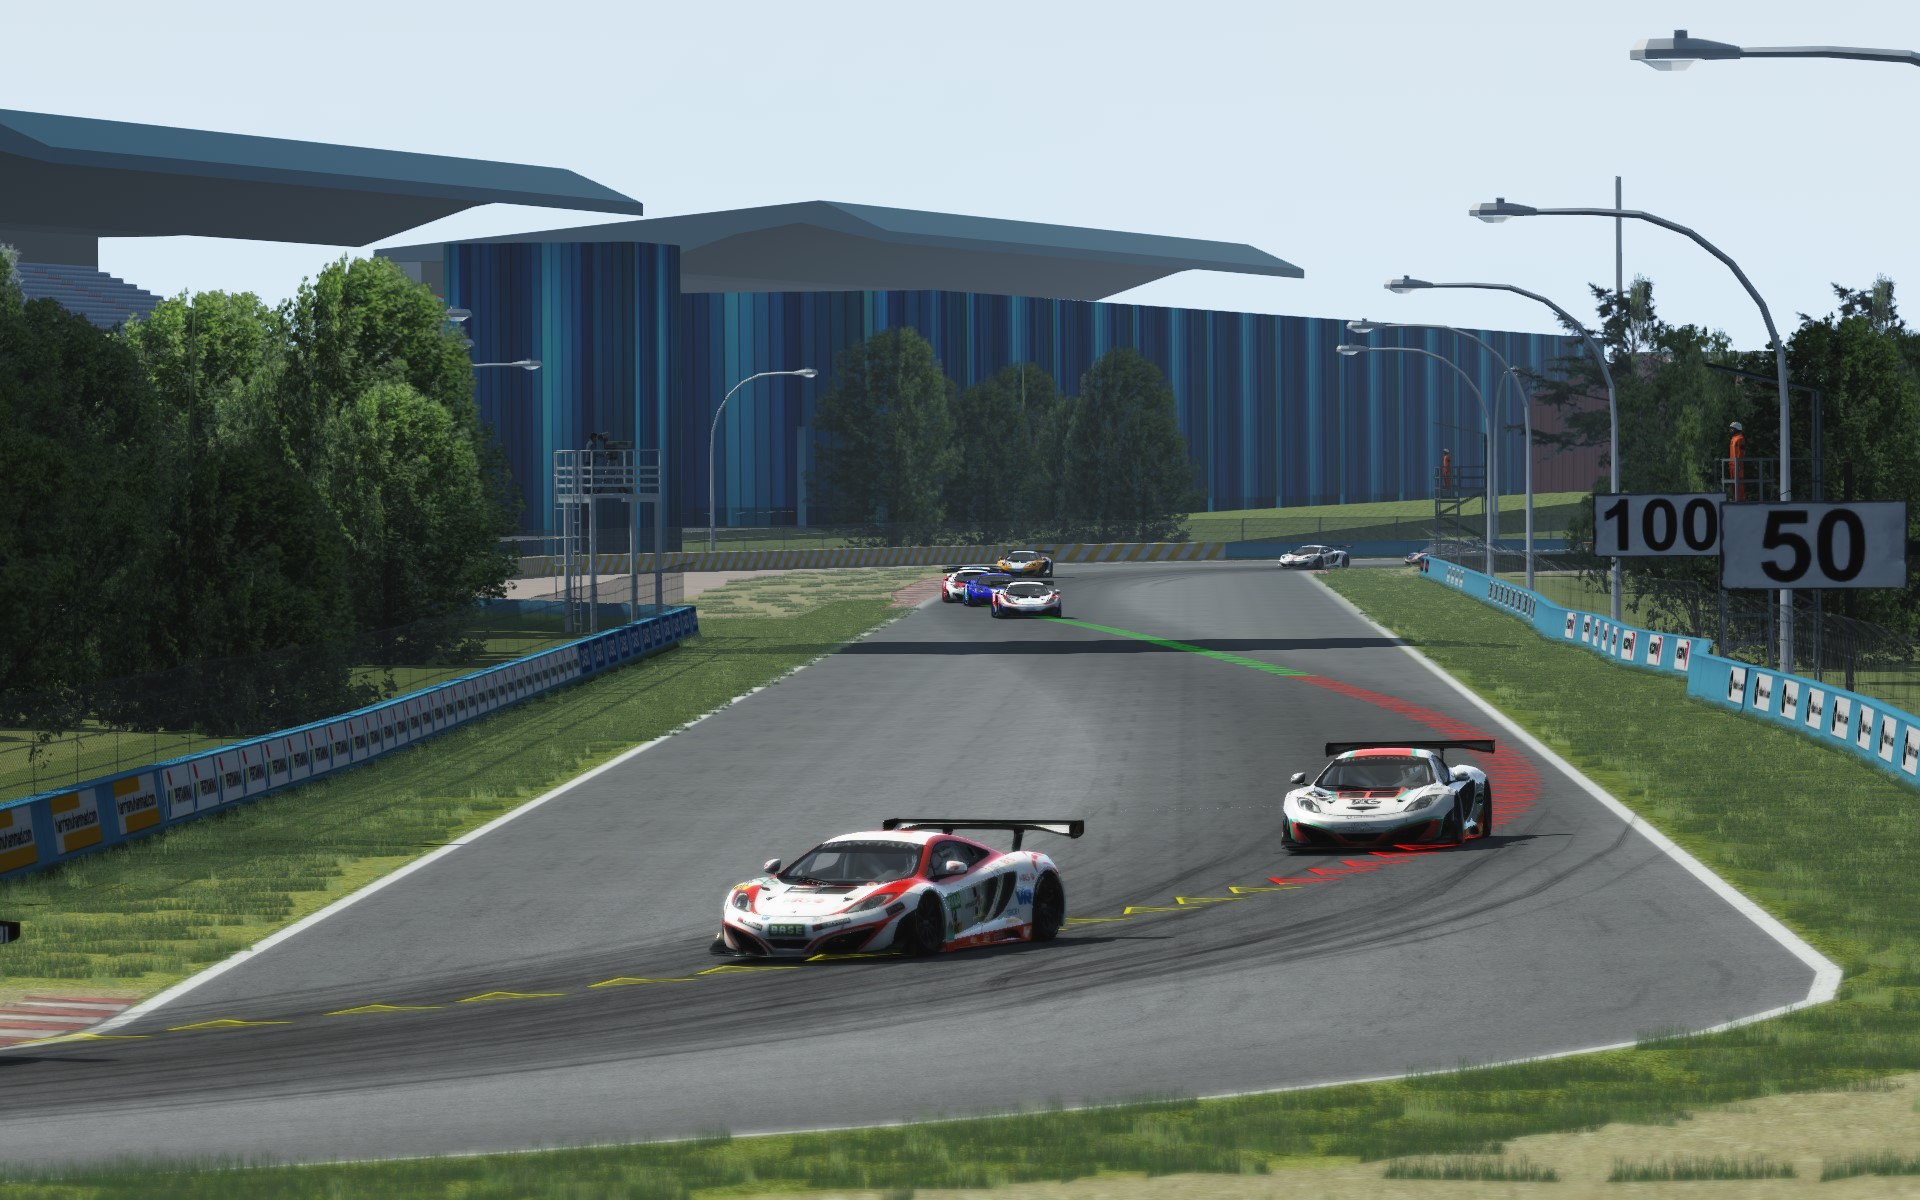 Screenshot_mclaren_mp412c_gt3_sentul_circuit_30-7-115-12-46-56.jpg